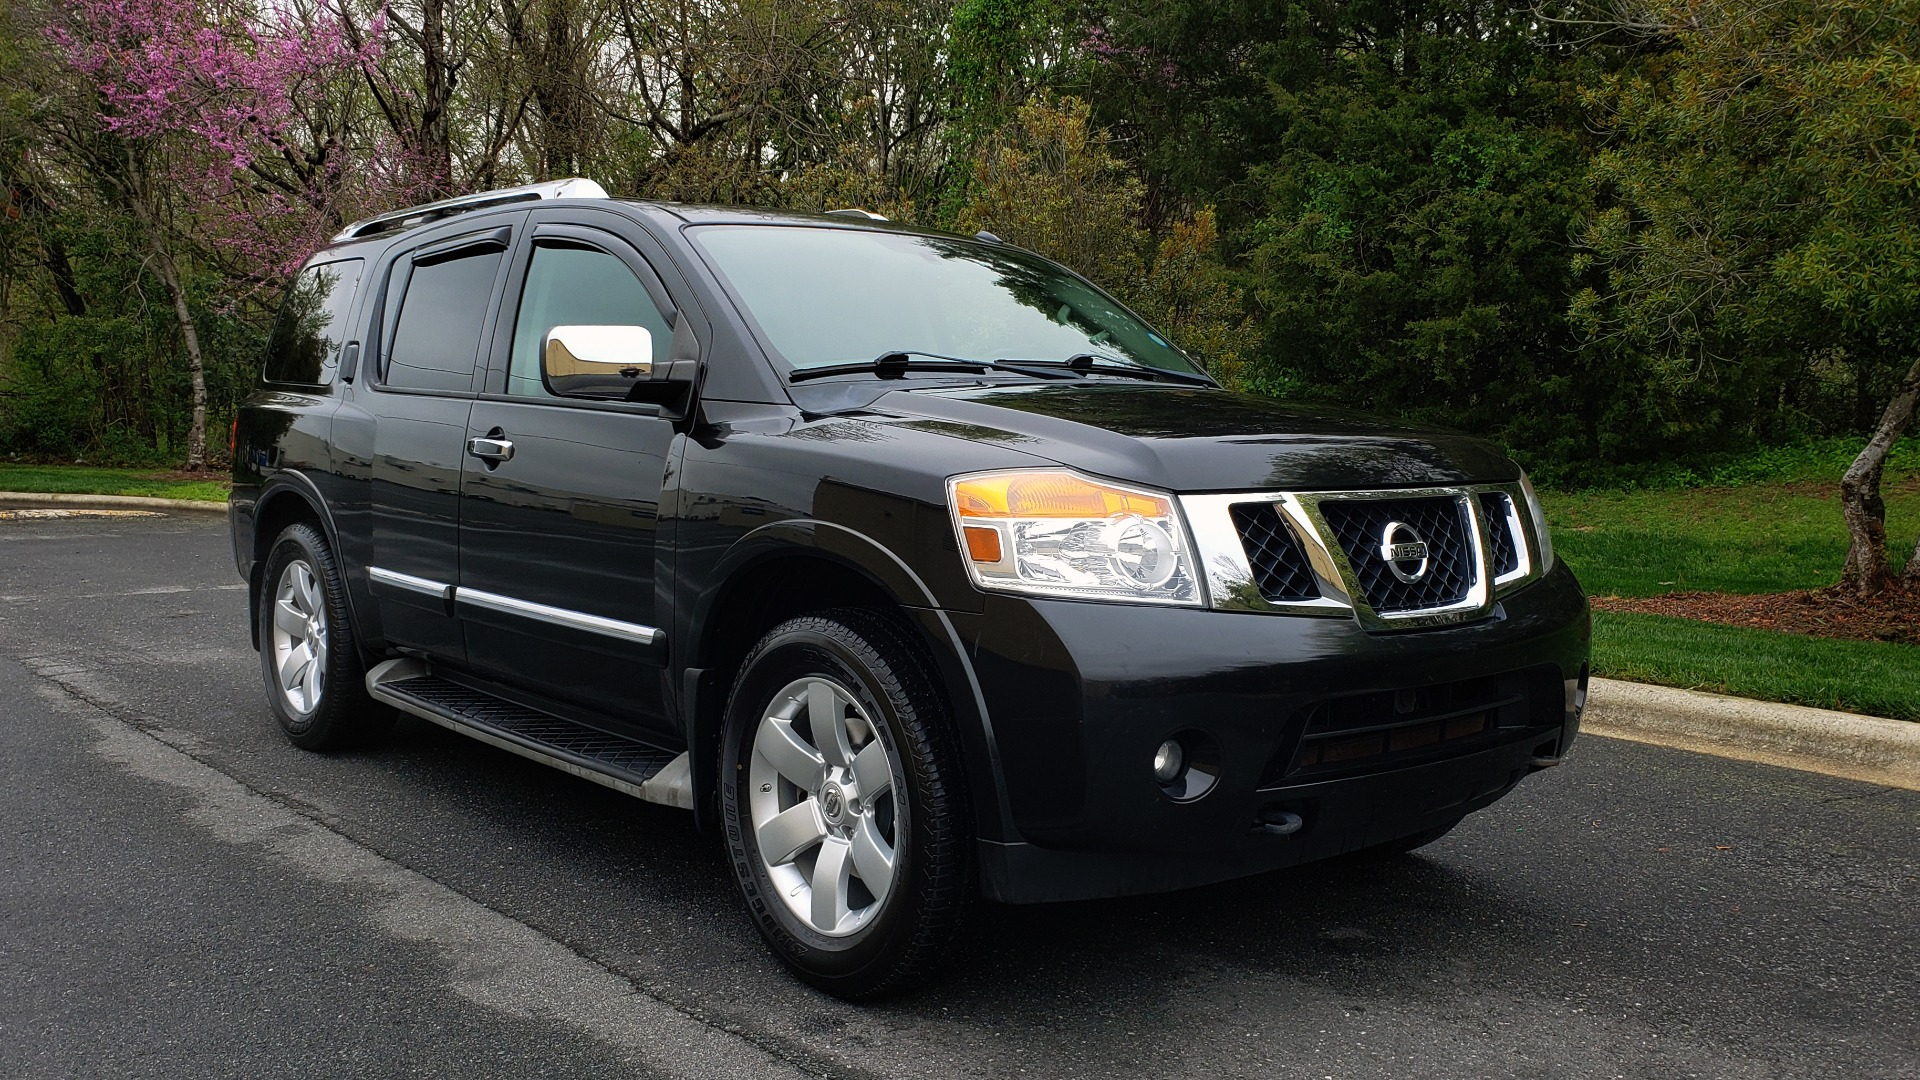 Used 2013 Nissan ARMADA SL 4WD / 5.6L V8 / NAV / SUNROOF / 3-ROW / REARVIEW for sale Sold at Formula Imports in Charlotte NC 28227 4